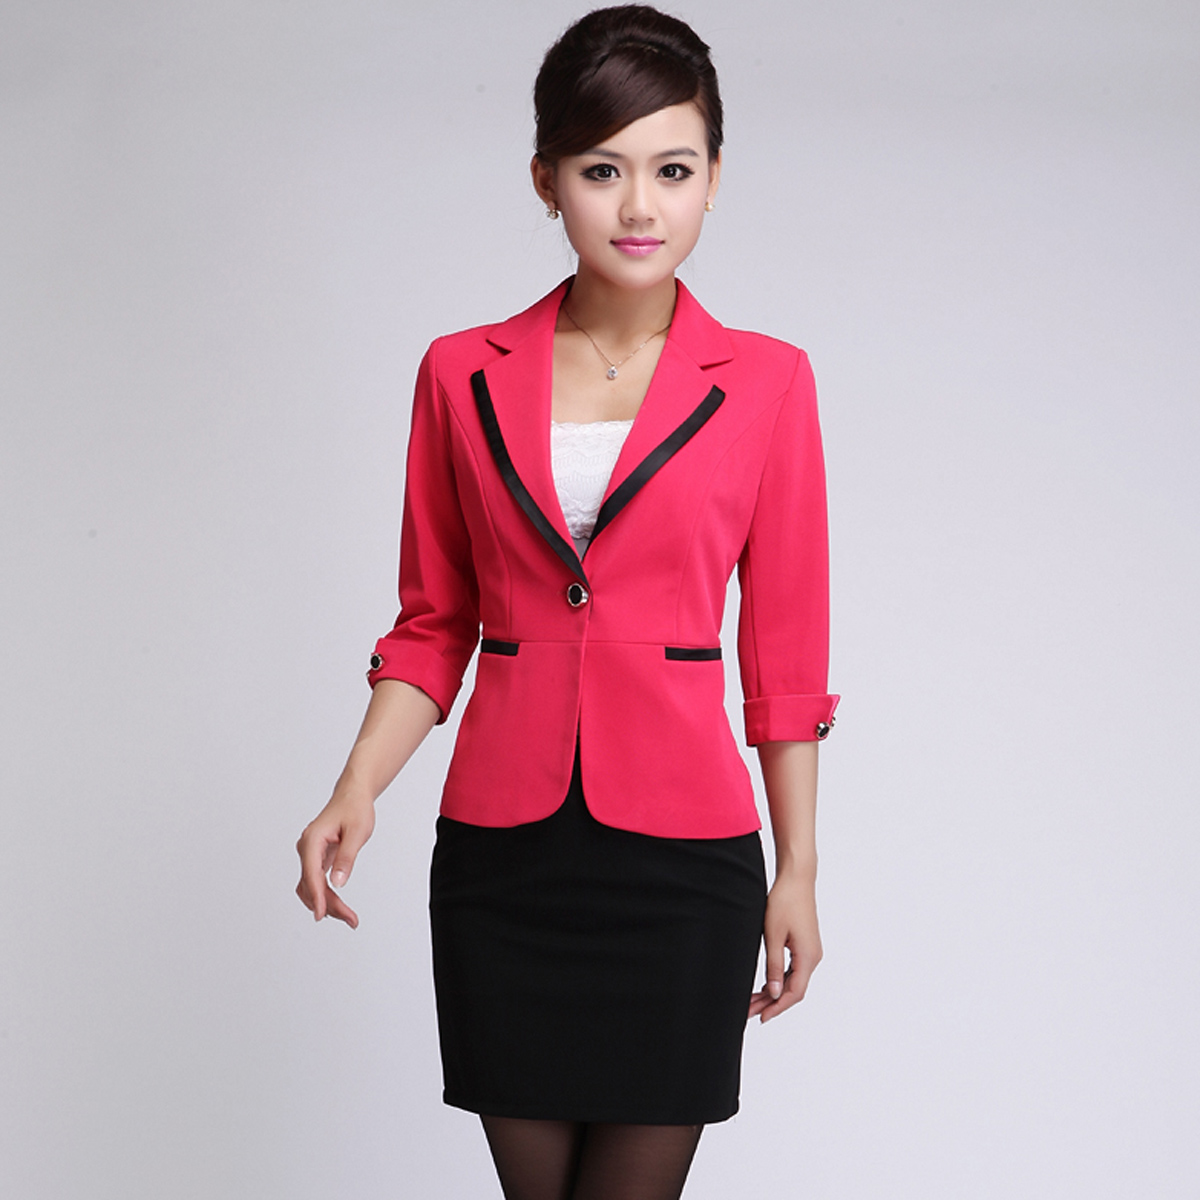 Sexy clothes for professional women